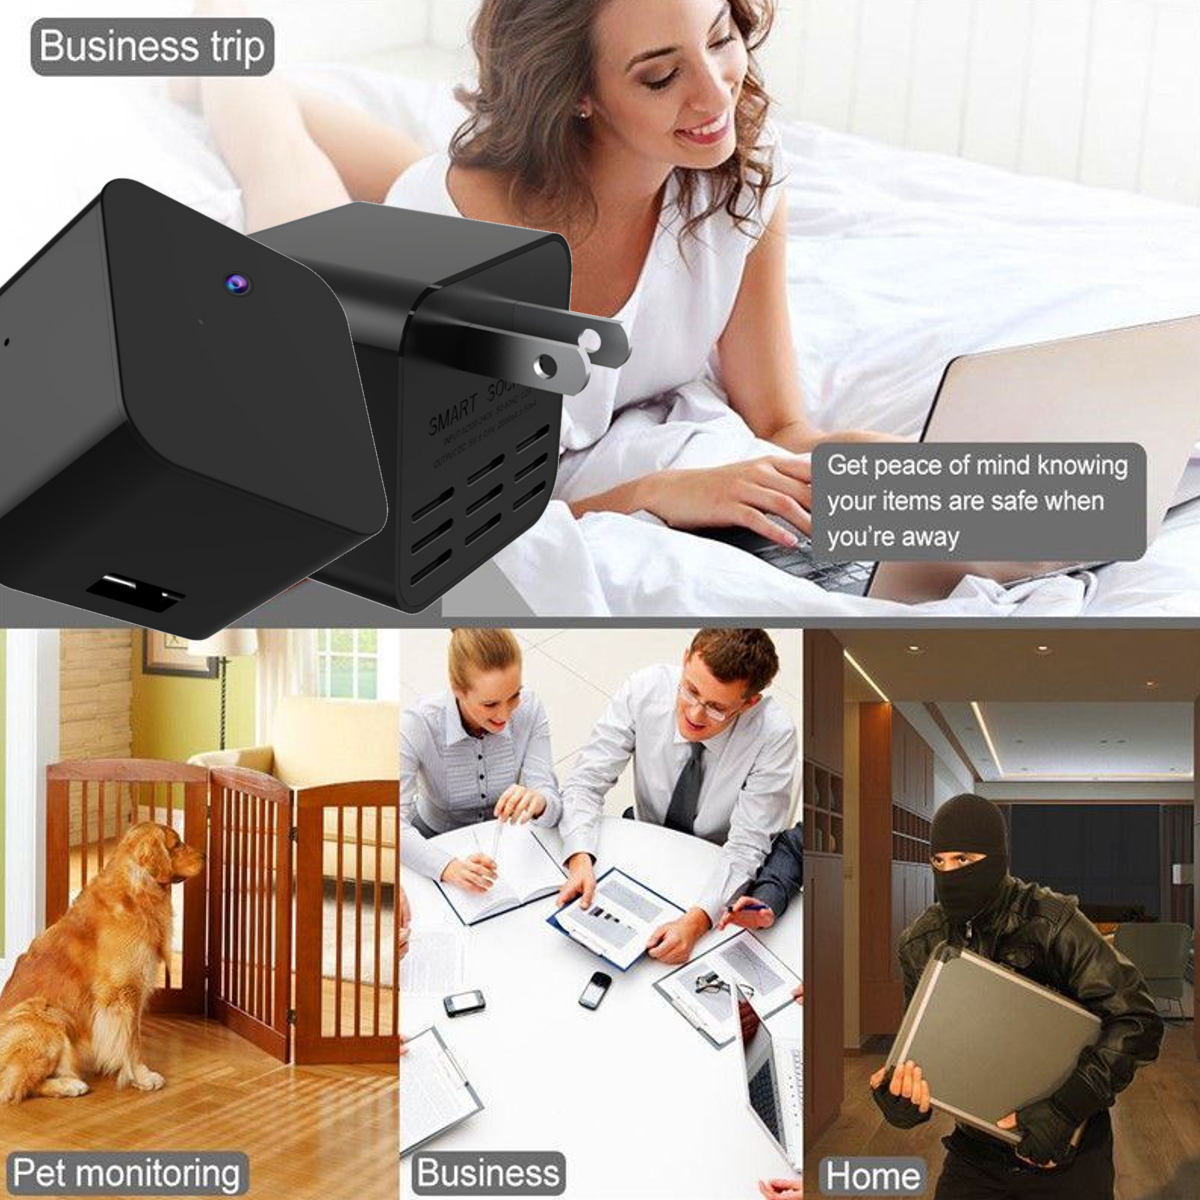 BIKIGHT HS5 WiFi 1080P HD Vlog Camera for Youtube USB Charger Infrared Light Night Vision Video Recorder